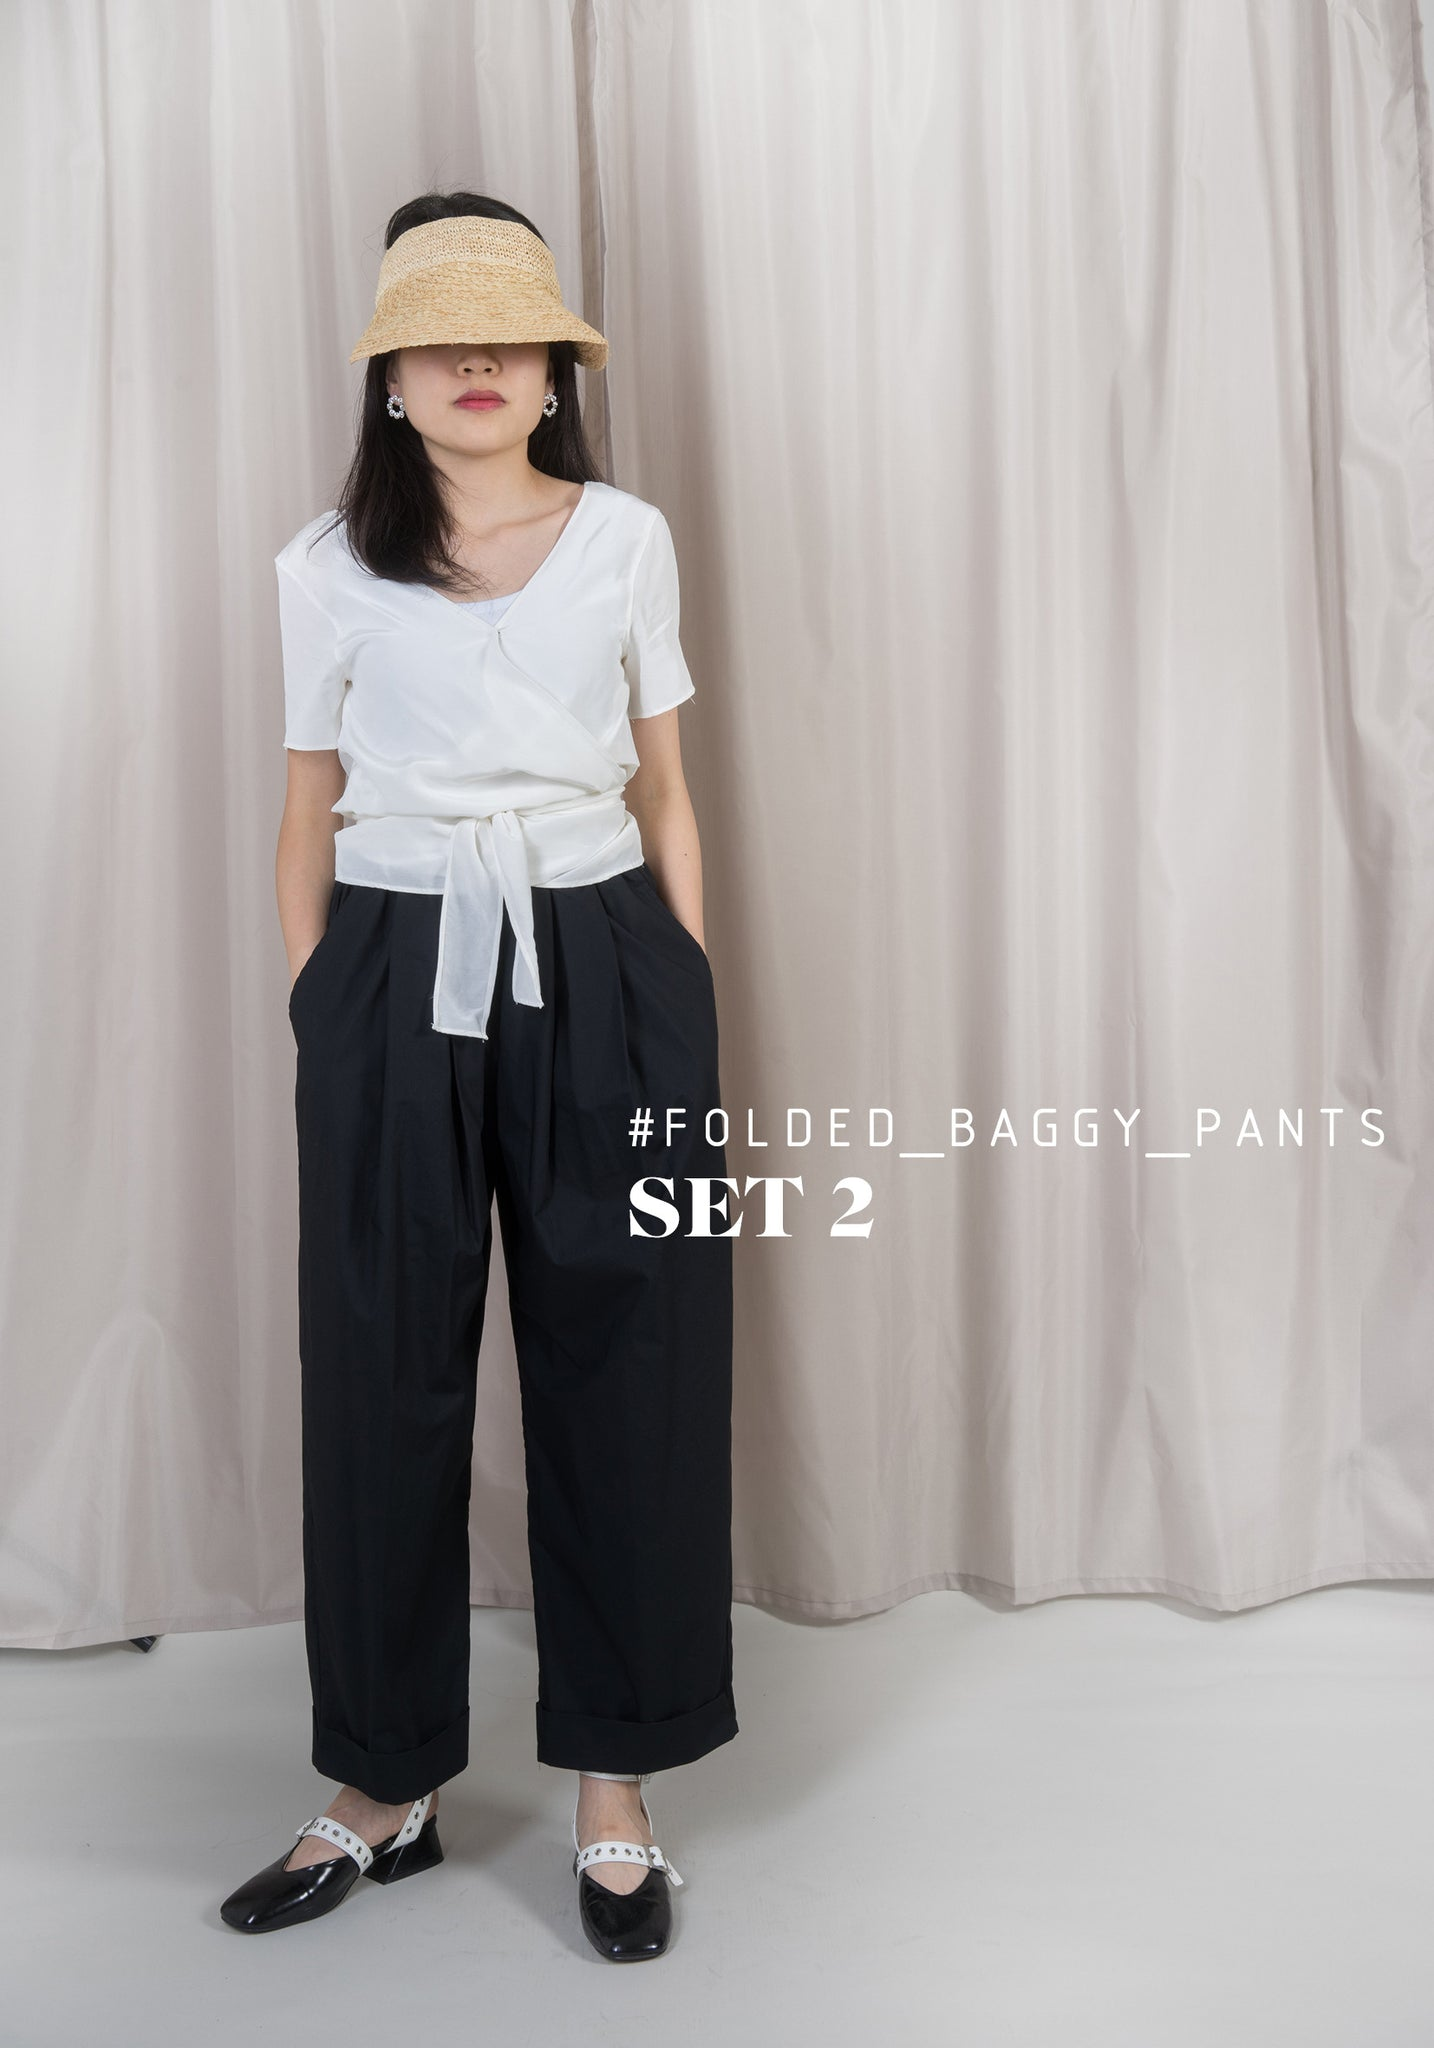 Folded Baggy Pants Set 2